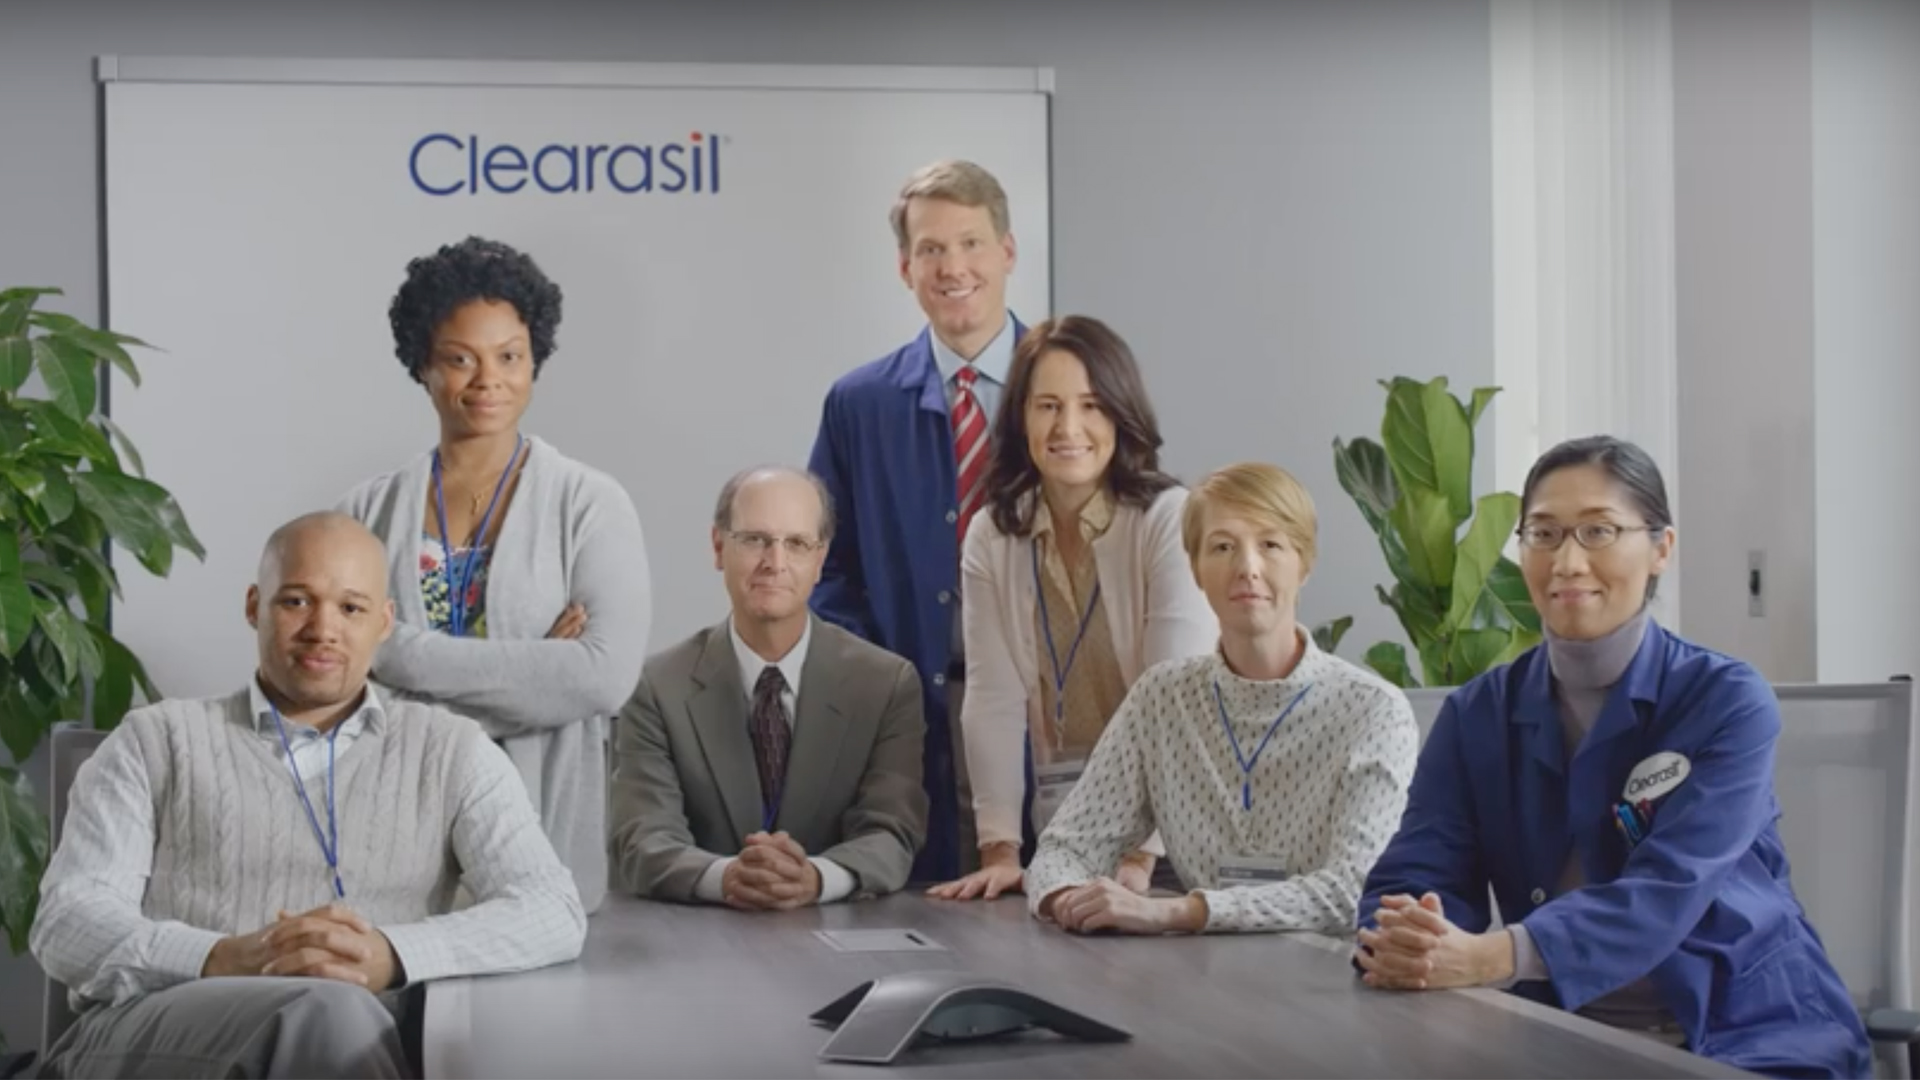 Clearasil 'Let's Be Clear'<br><br>Director Sunbeam<br> Producer Cédric Troadec<br>Production Co Ways & Means